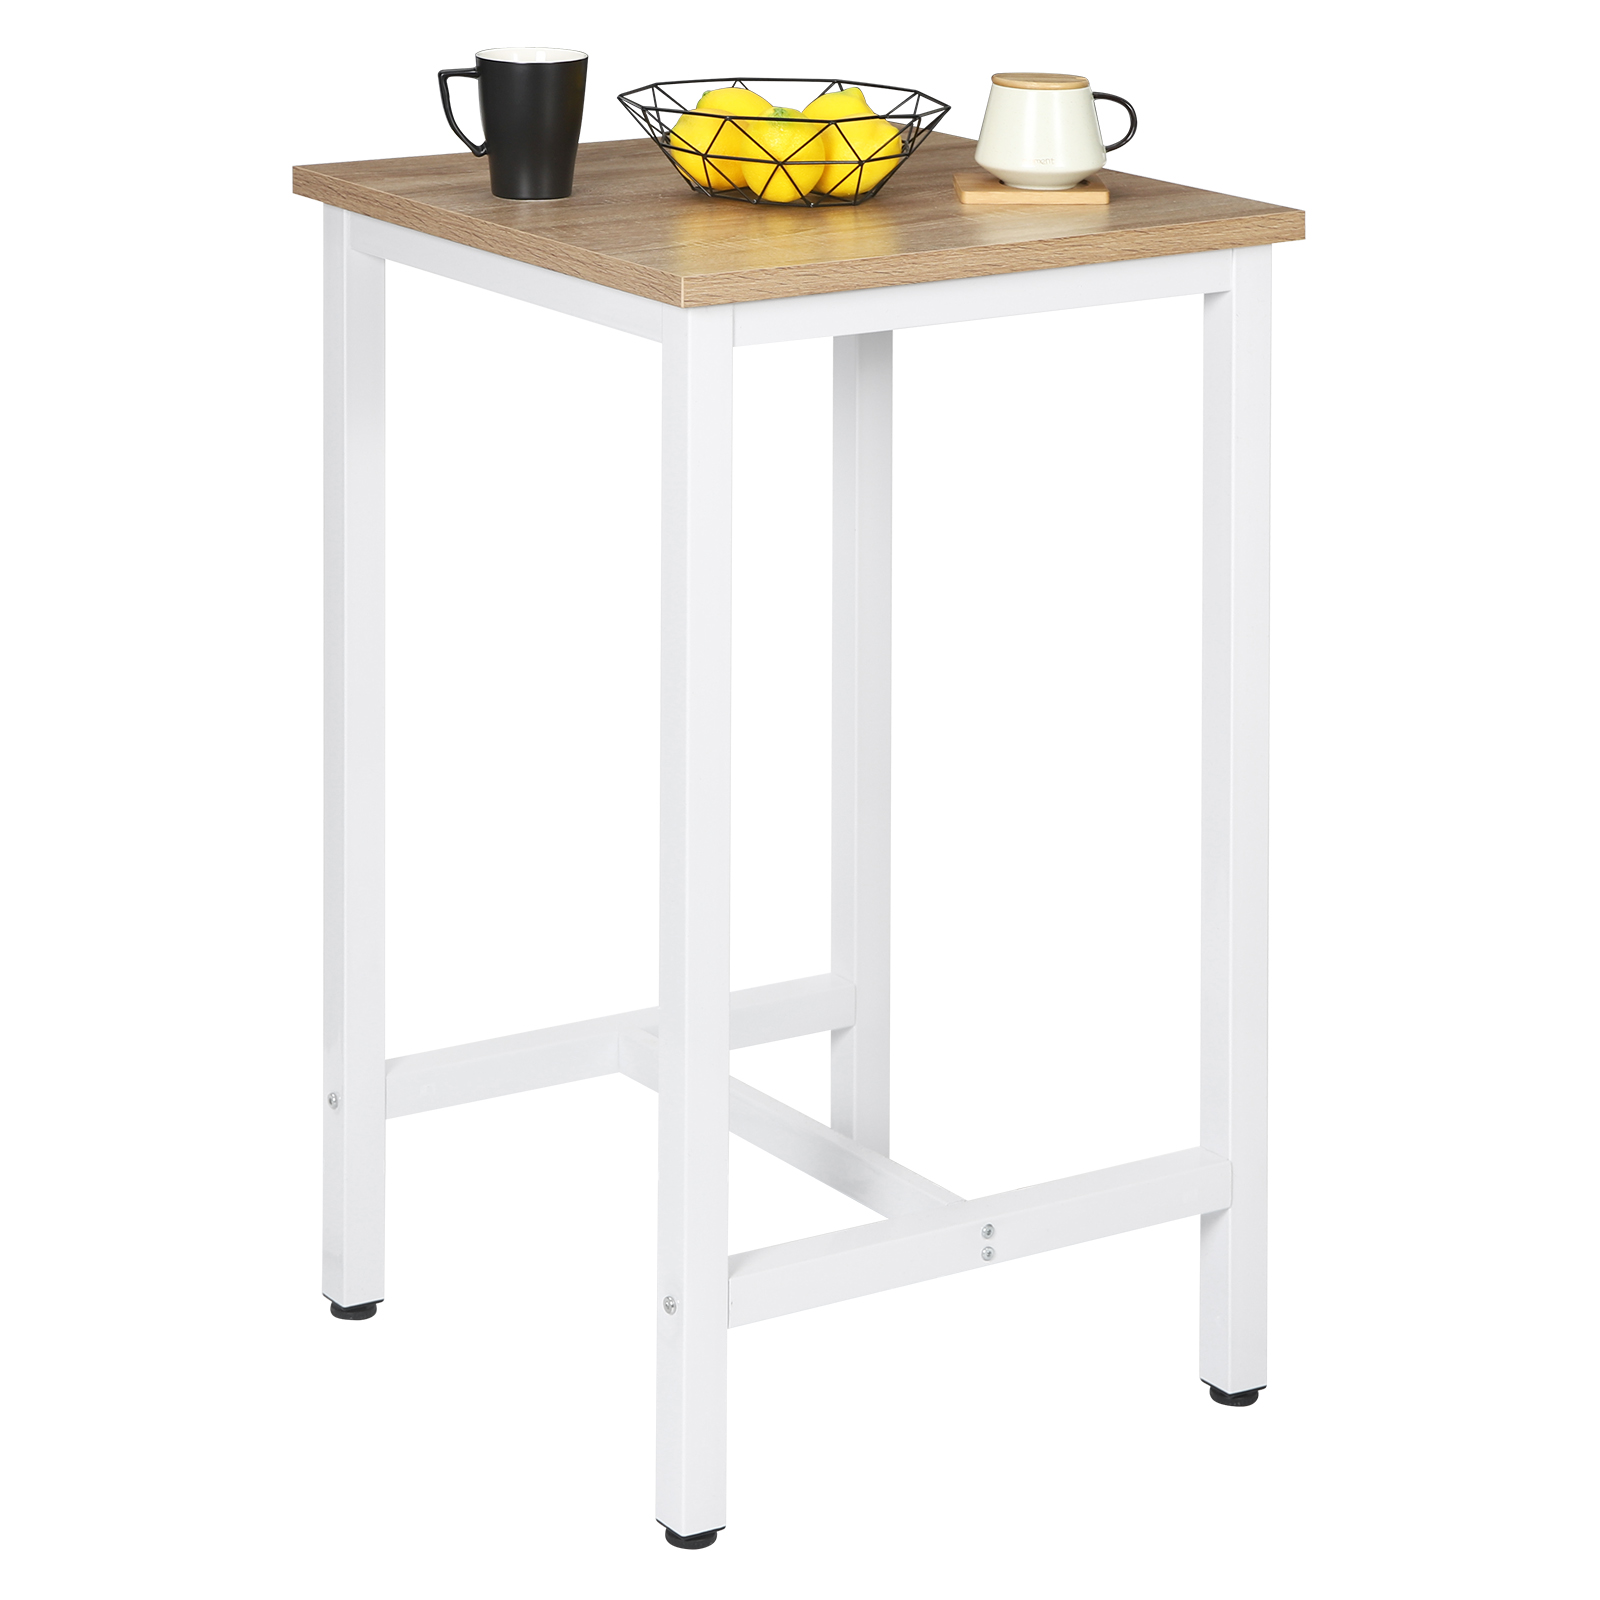 1PC High Bar Table Bistro Dining Table with Metal Frame 60 x 60 x 102cm Coffee Tea Home Kitchen Breakfast Bar Furniture